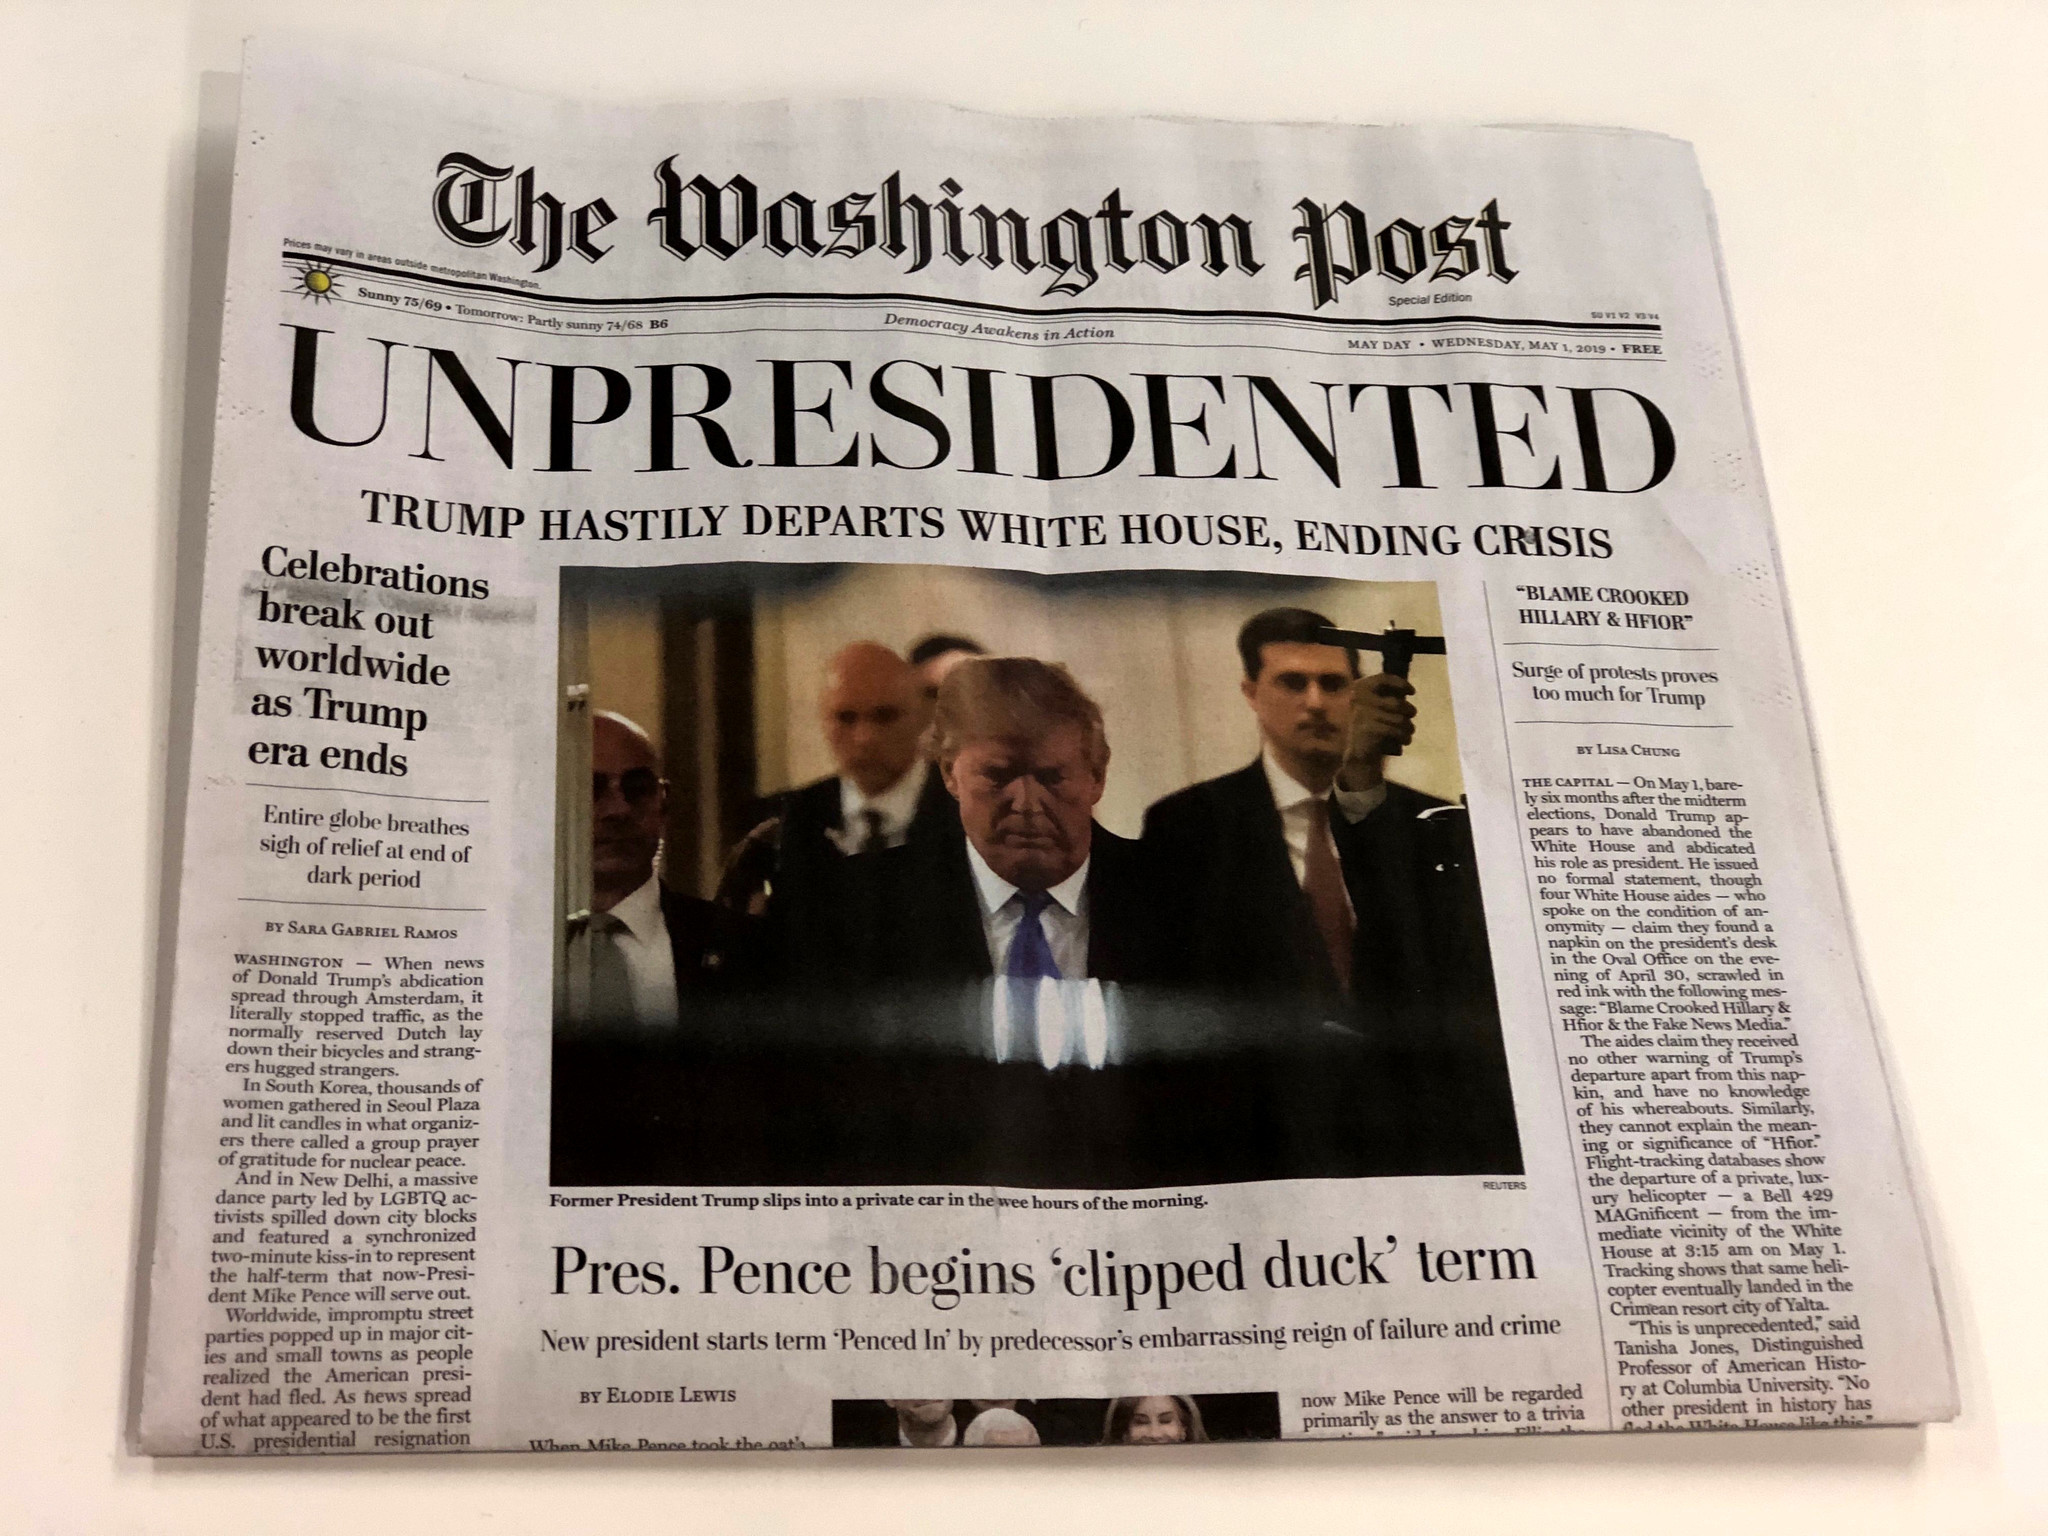 Fake editions of The Washington Post handed out at multiple locations in D.C.